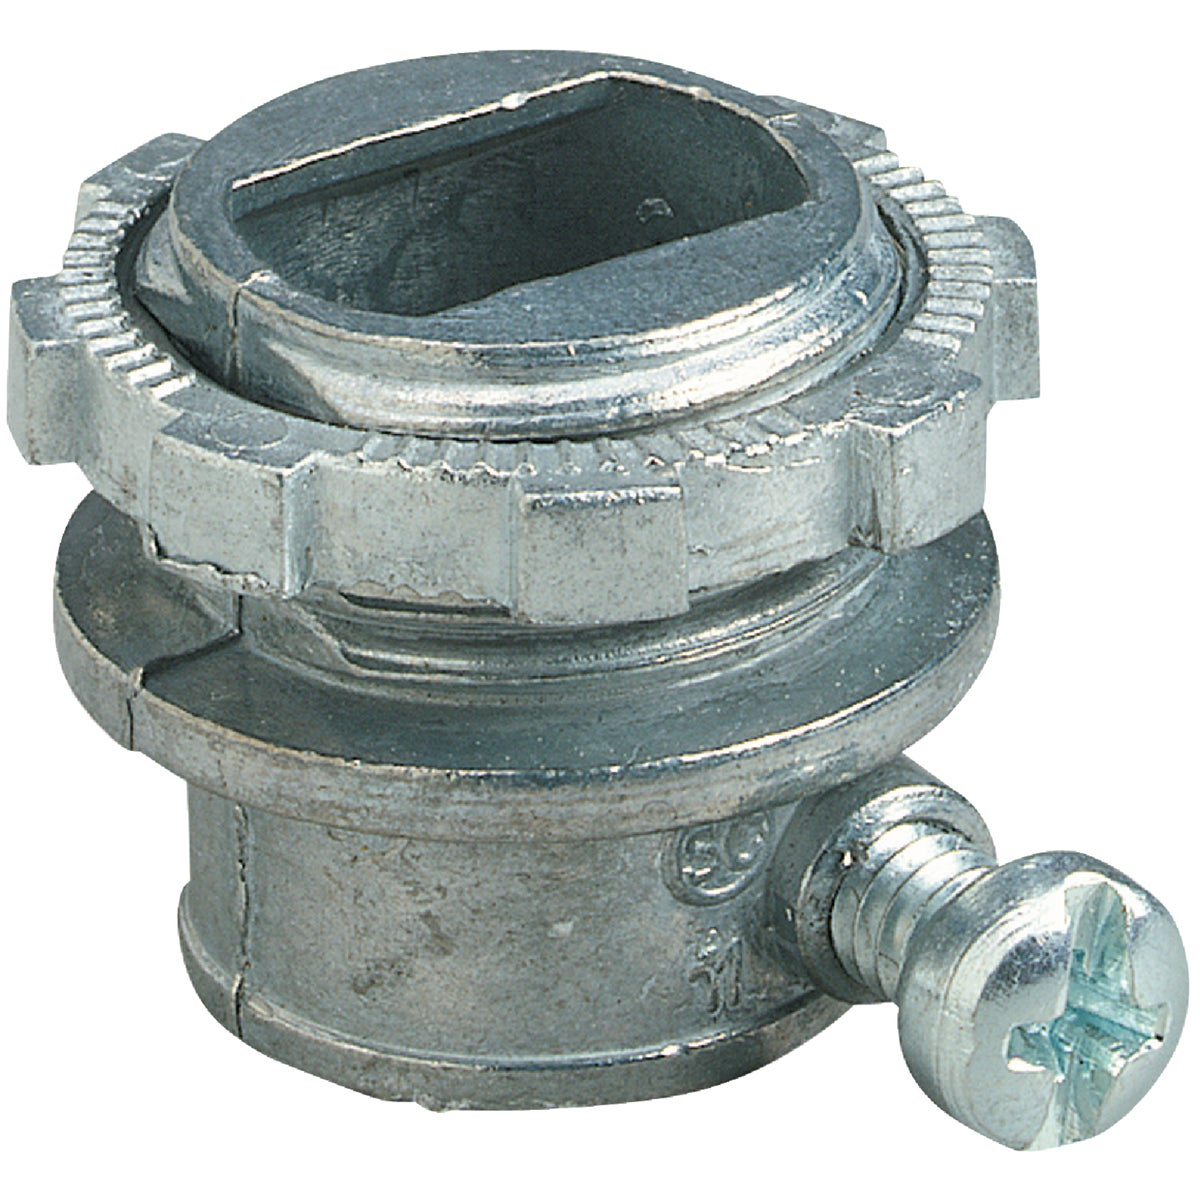 "3/8"" FLEX CONNECTOR - XC220SC1 by Thomas & Betts"